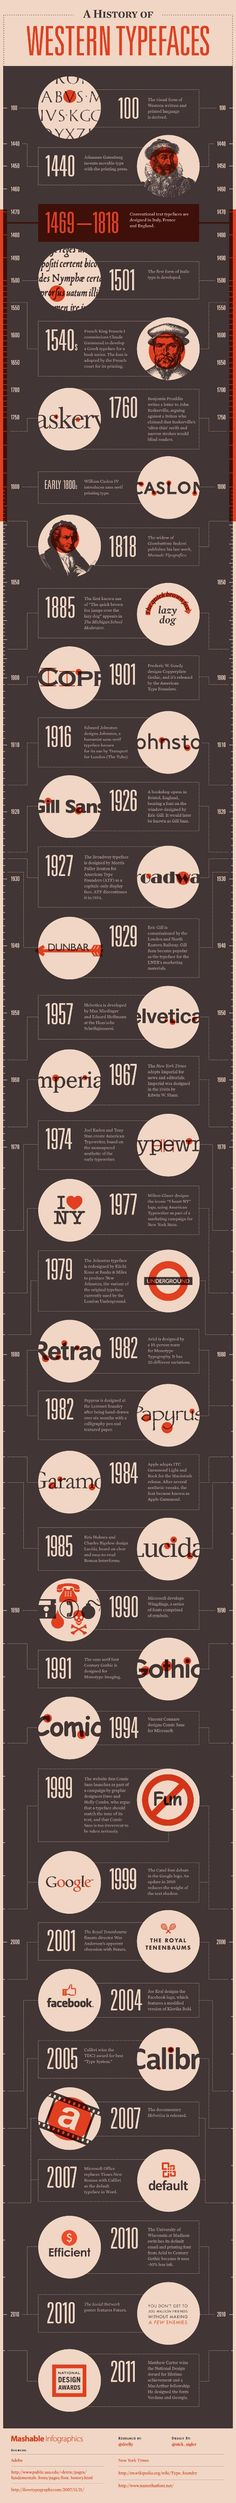 Typeface Timeline Shows Us The History of Fonts [Infographic]